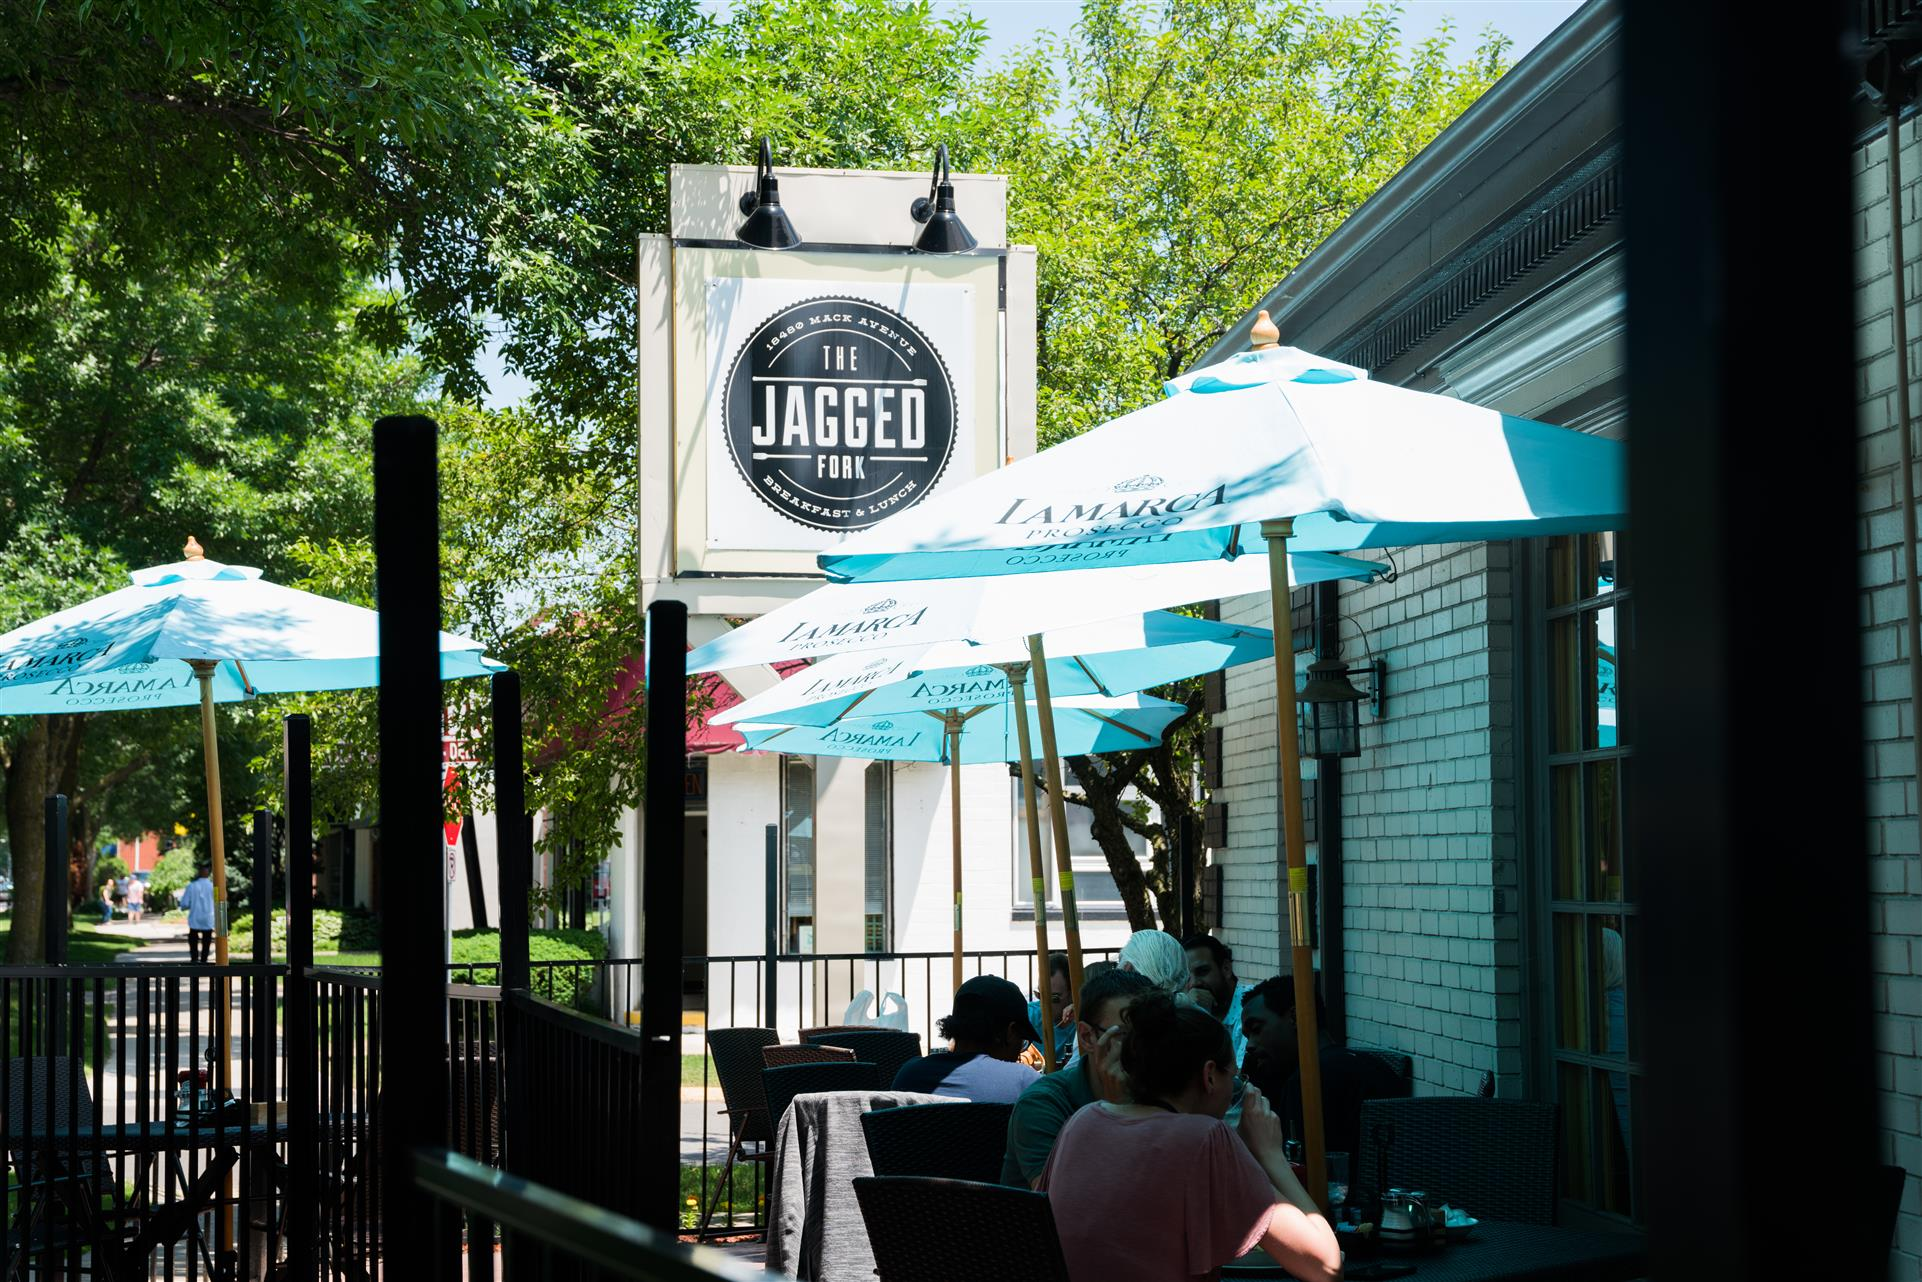 The Jagged Fork sign in front of customers sitting at tables outside under blue umbrellas